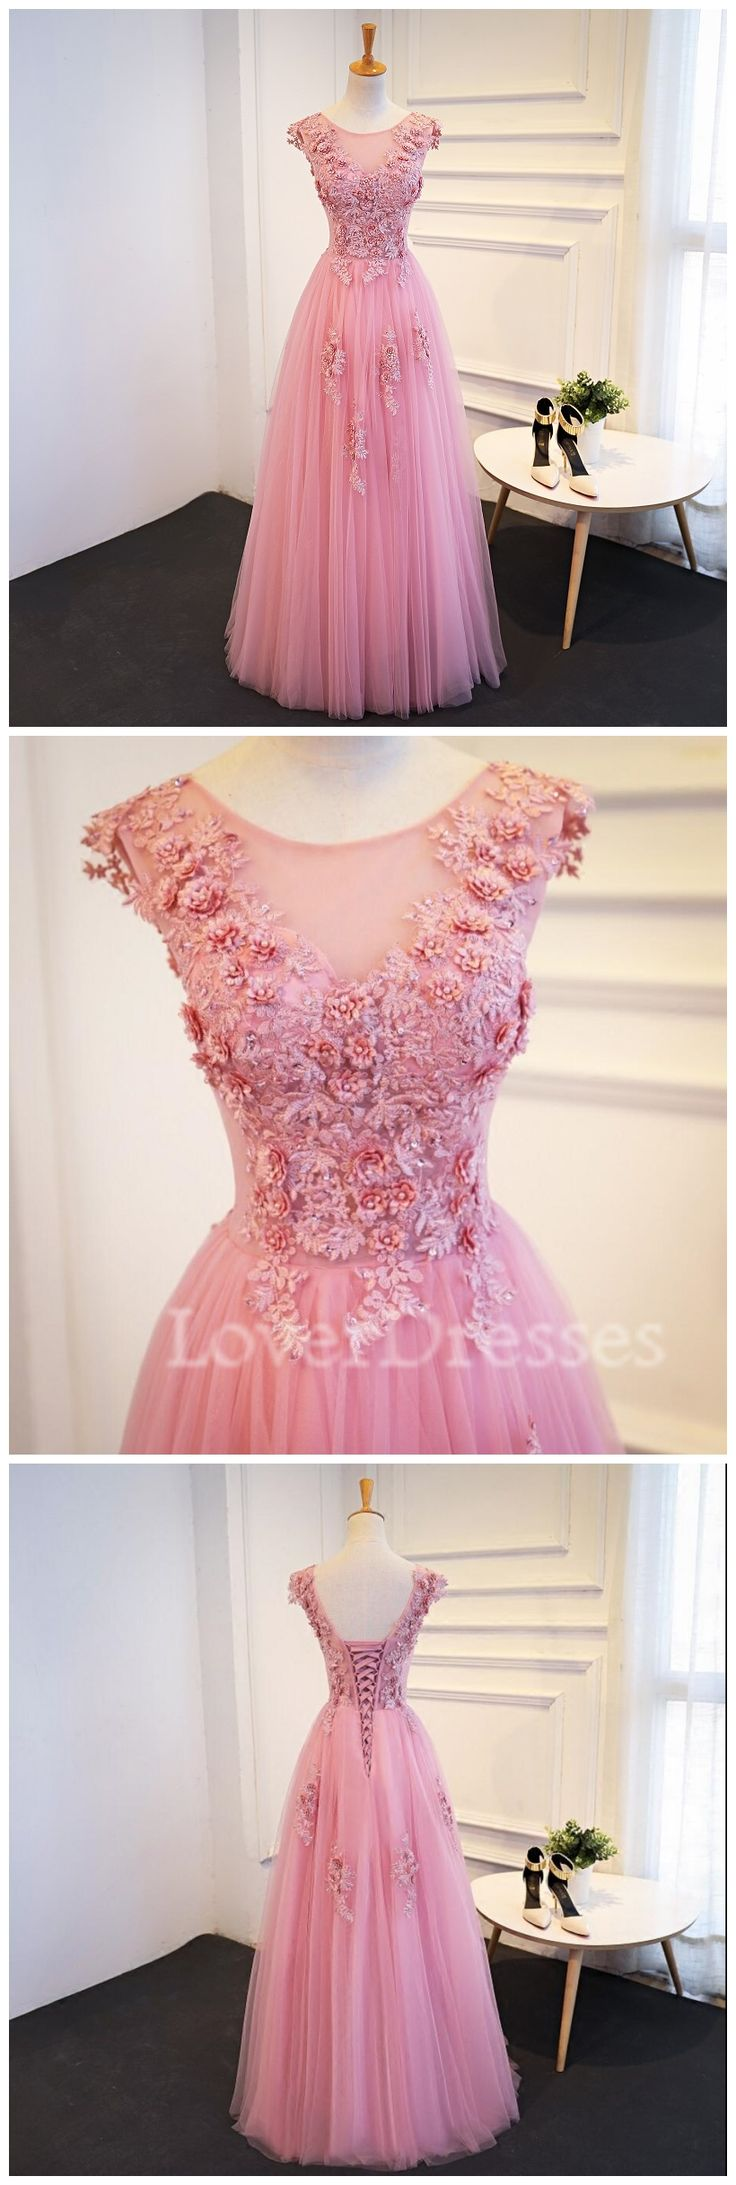 Blush Pink Cap Sleeve Lace Scoop Neckline Lace Beaded Evening Prom Dresses, 2018 Party Prom Dress, Custom, 271039